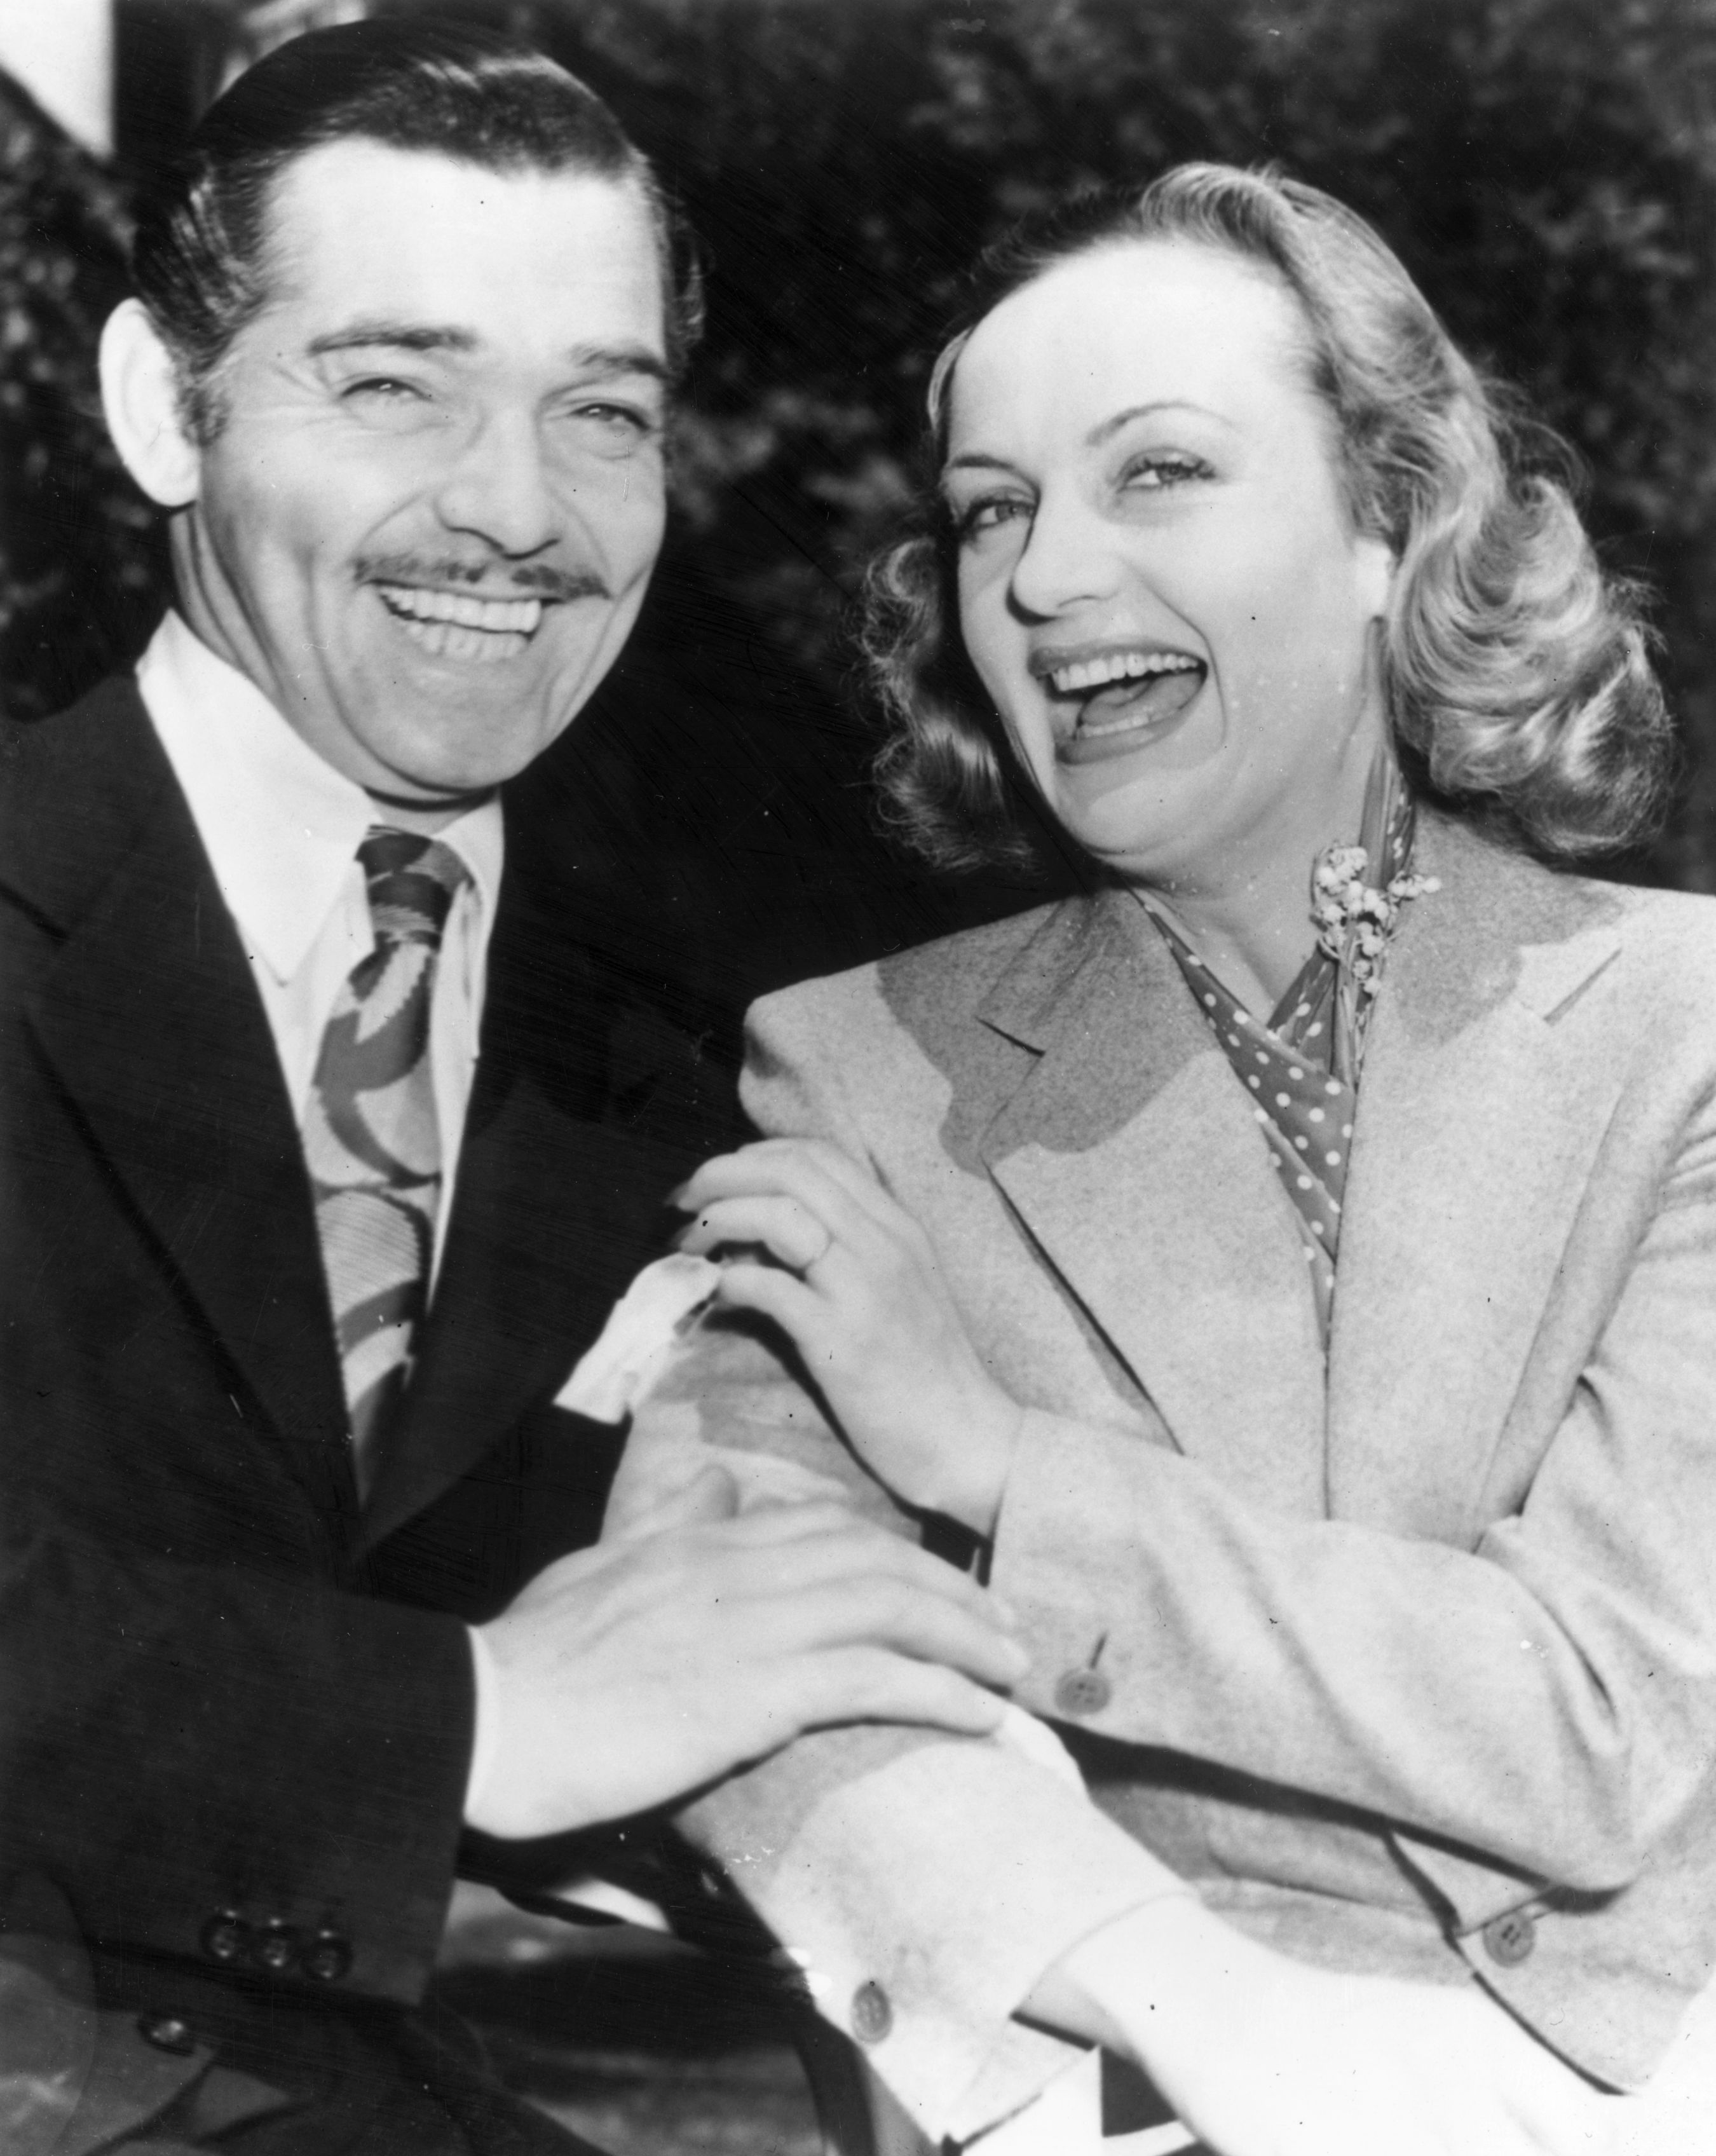 Clark Gable and Carole Lombard posing together on February 10, 1939, after their elopement | Photo: Keystone/Getty Images